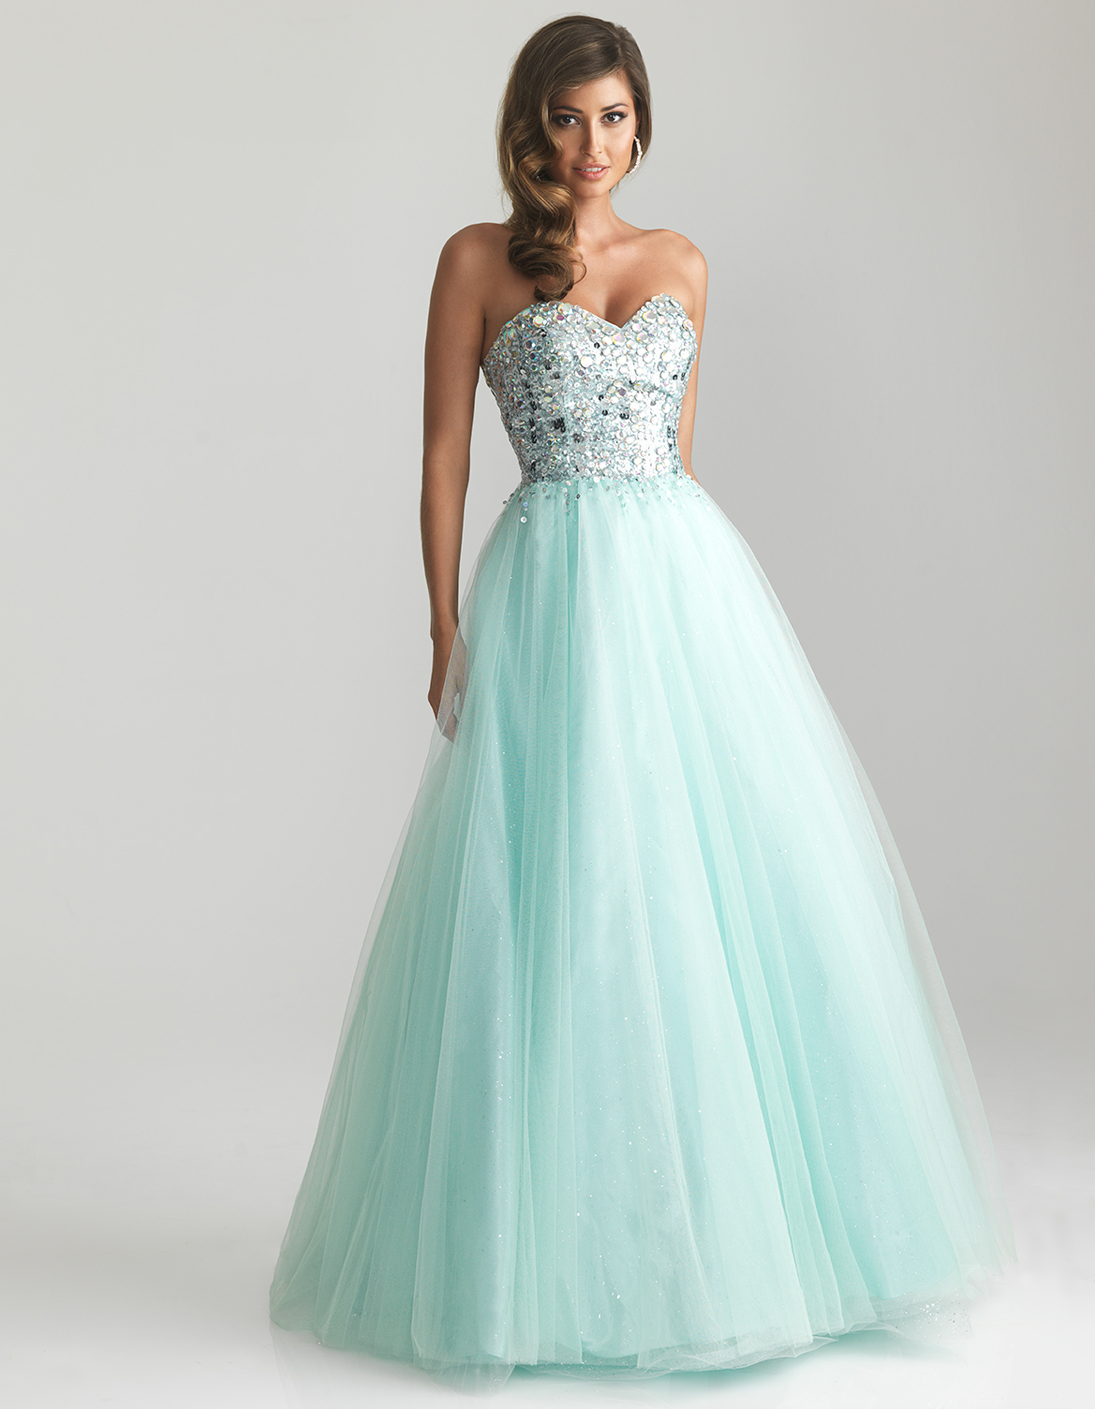 Awesome Vintage Style Prom Dresses Photos - Styles & Ideas 2018 ...